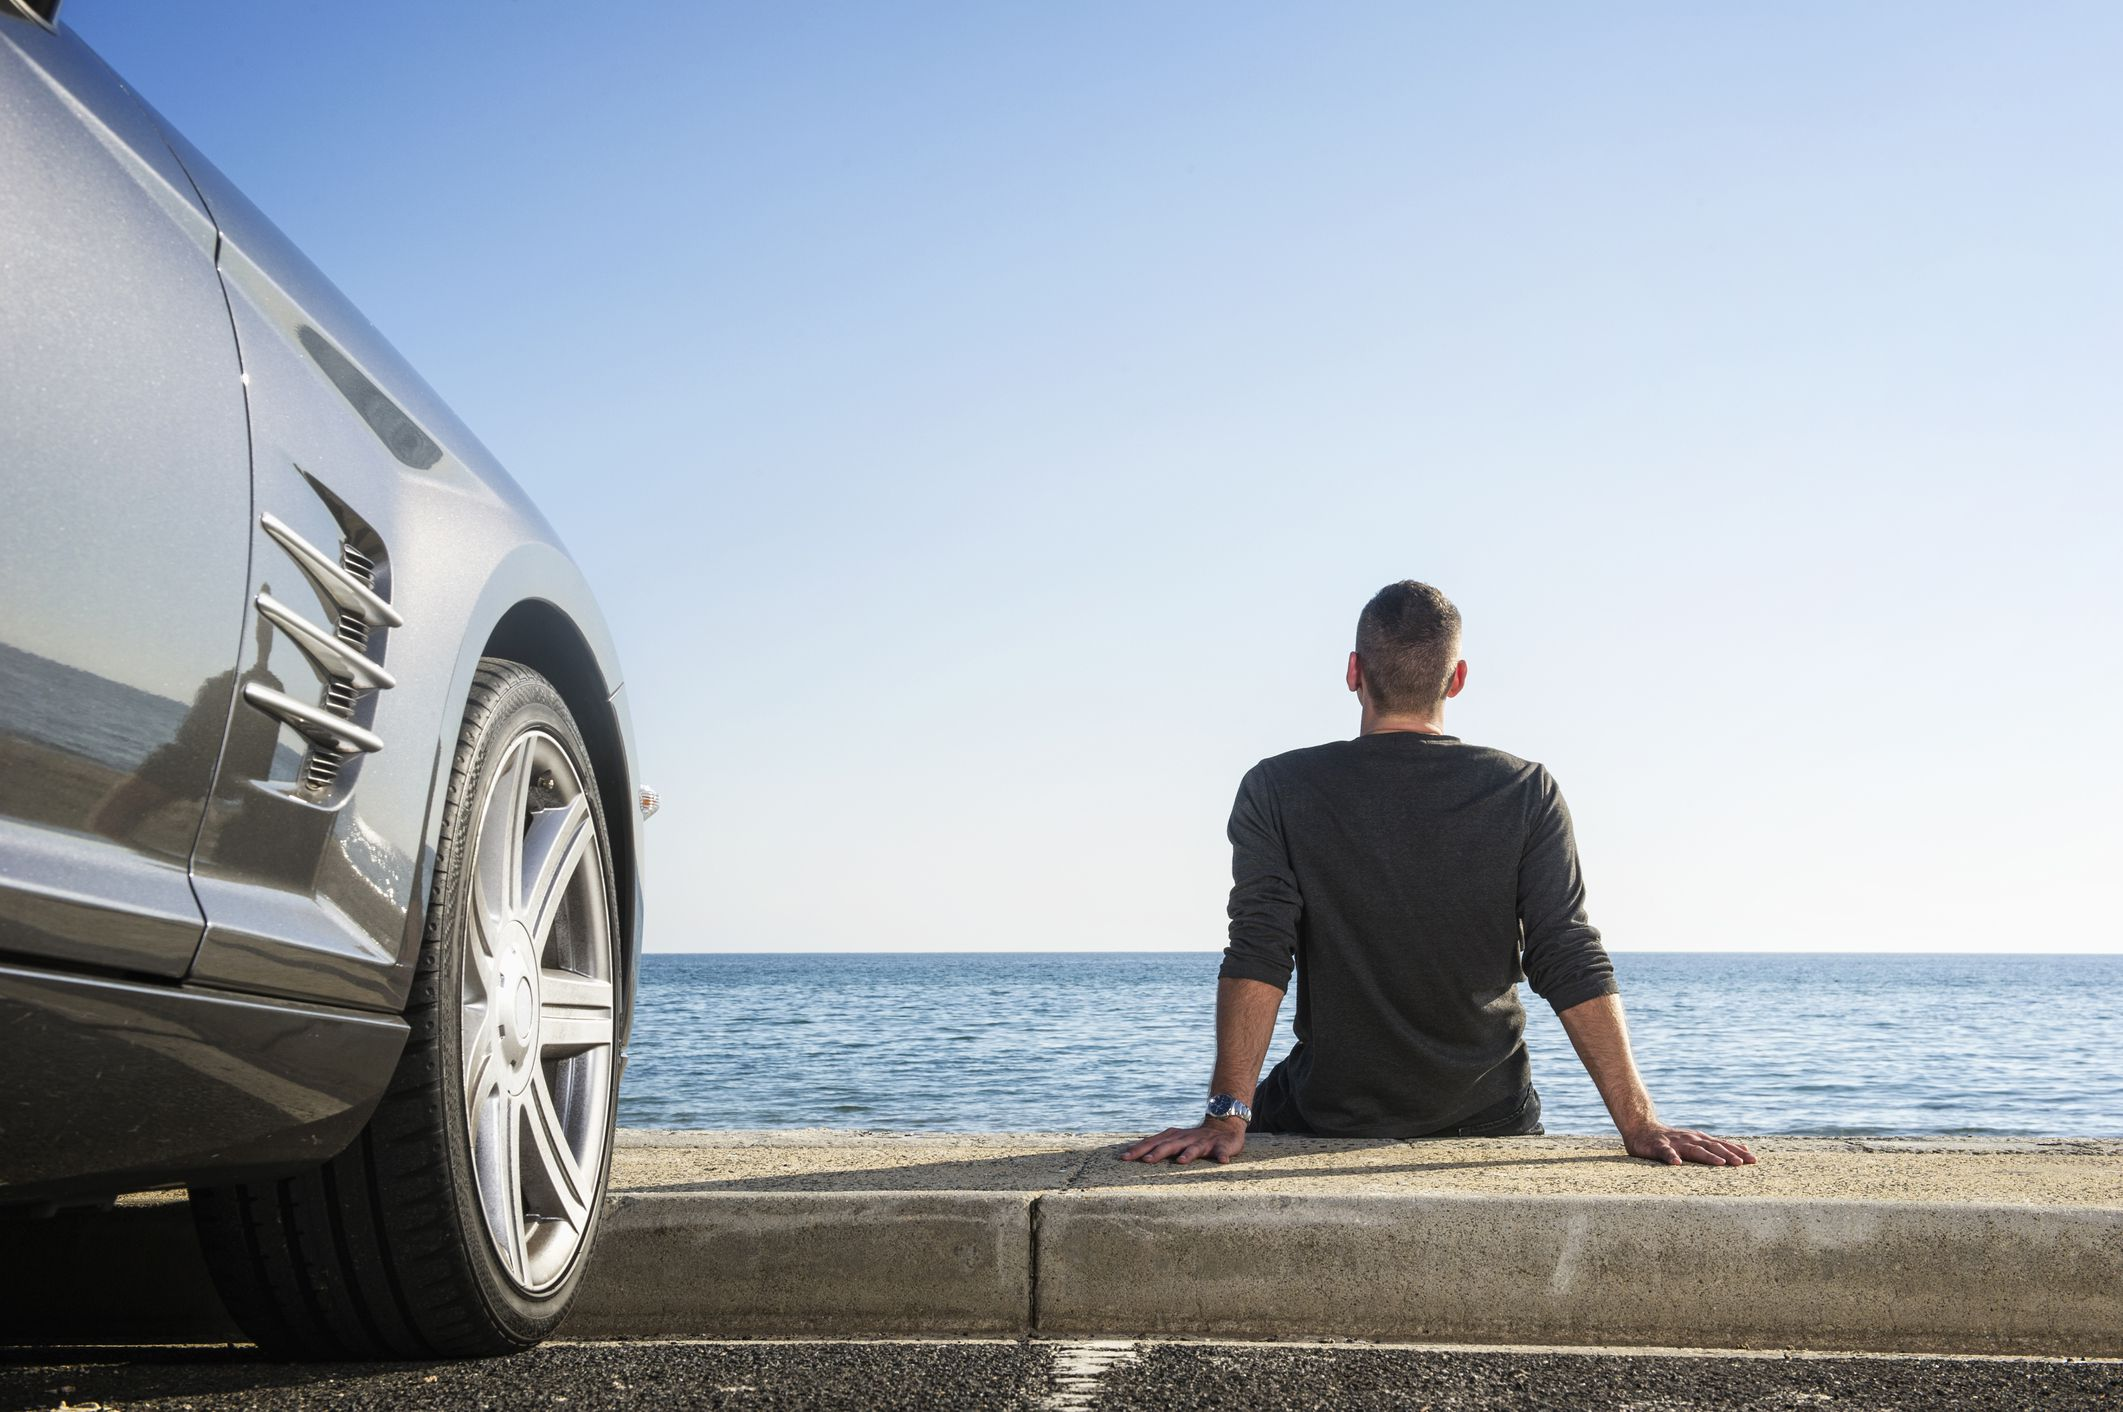 where to purchase gap insurance options online vs dealership and insurance pany f725f9b5874eeca998c